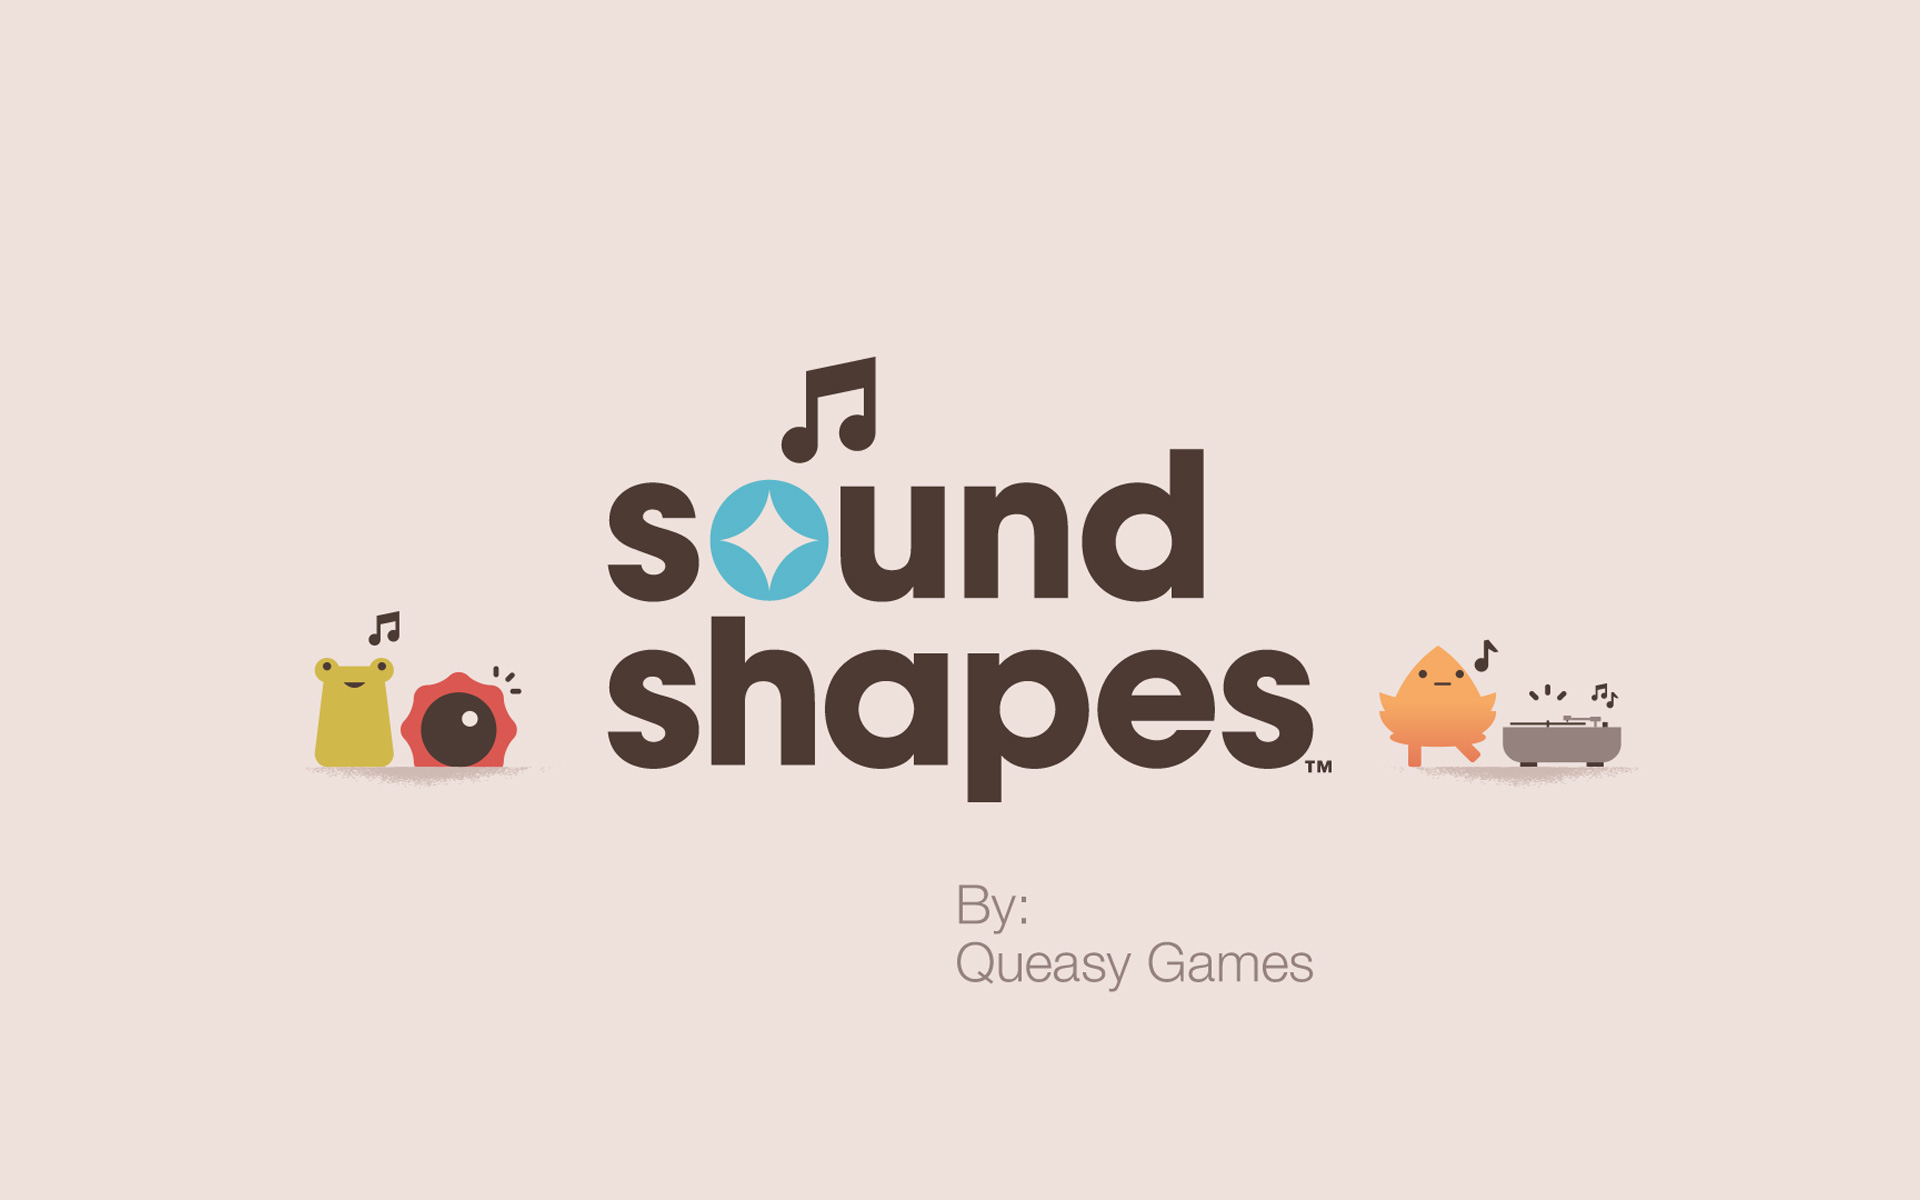 Free Sound Shapes Wallpaper in 1920x1200